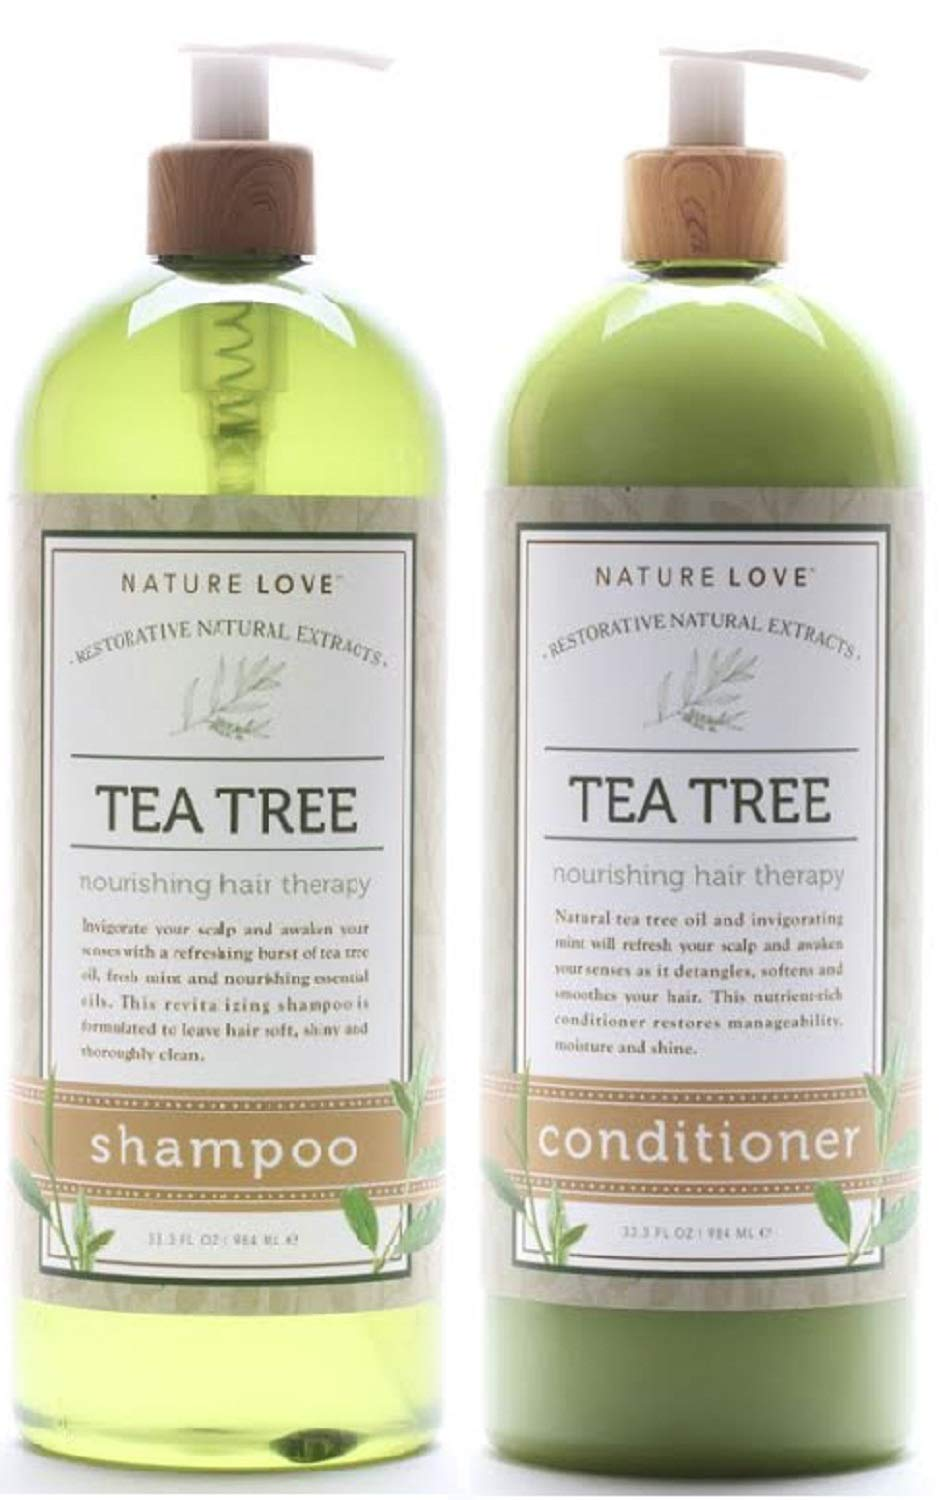 Nature Love Tea Tree Shampoo and Conditioner Duo - Invigorate Your Scalp and Awaken Your Senses with a Refreshing Burst of Tea Tree Oil, Fresh Mint, and Nourishing Essential Oils by NATURE LOVE HARMONIOUS WELL-BEING